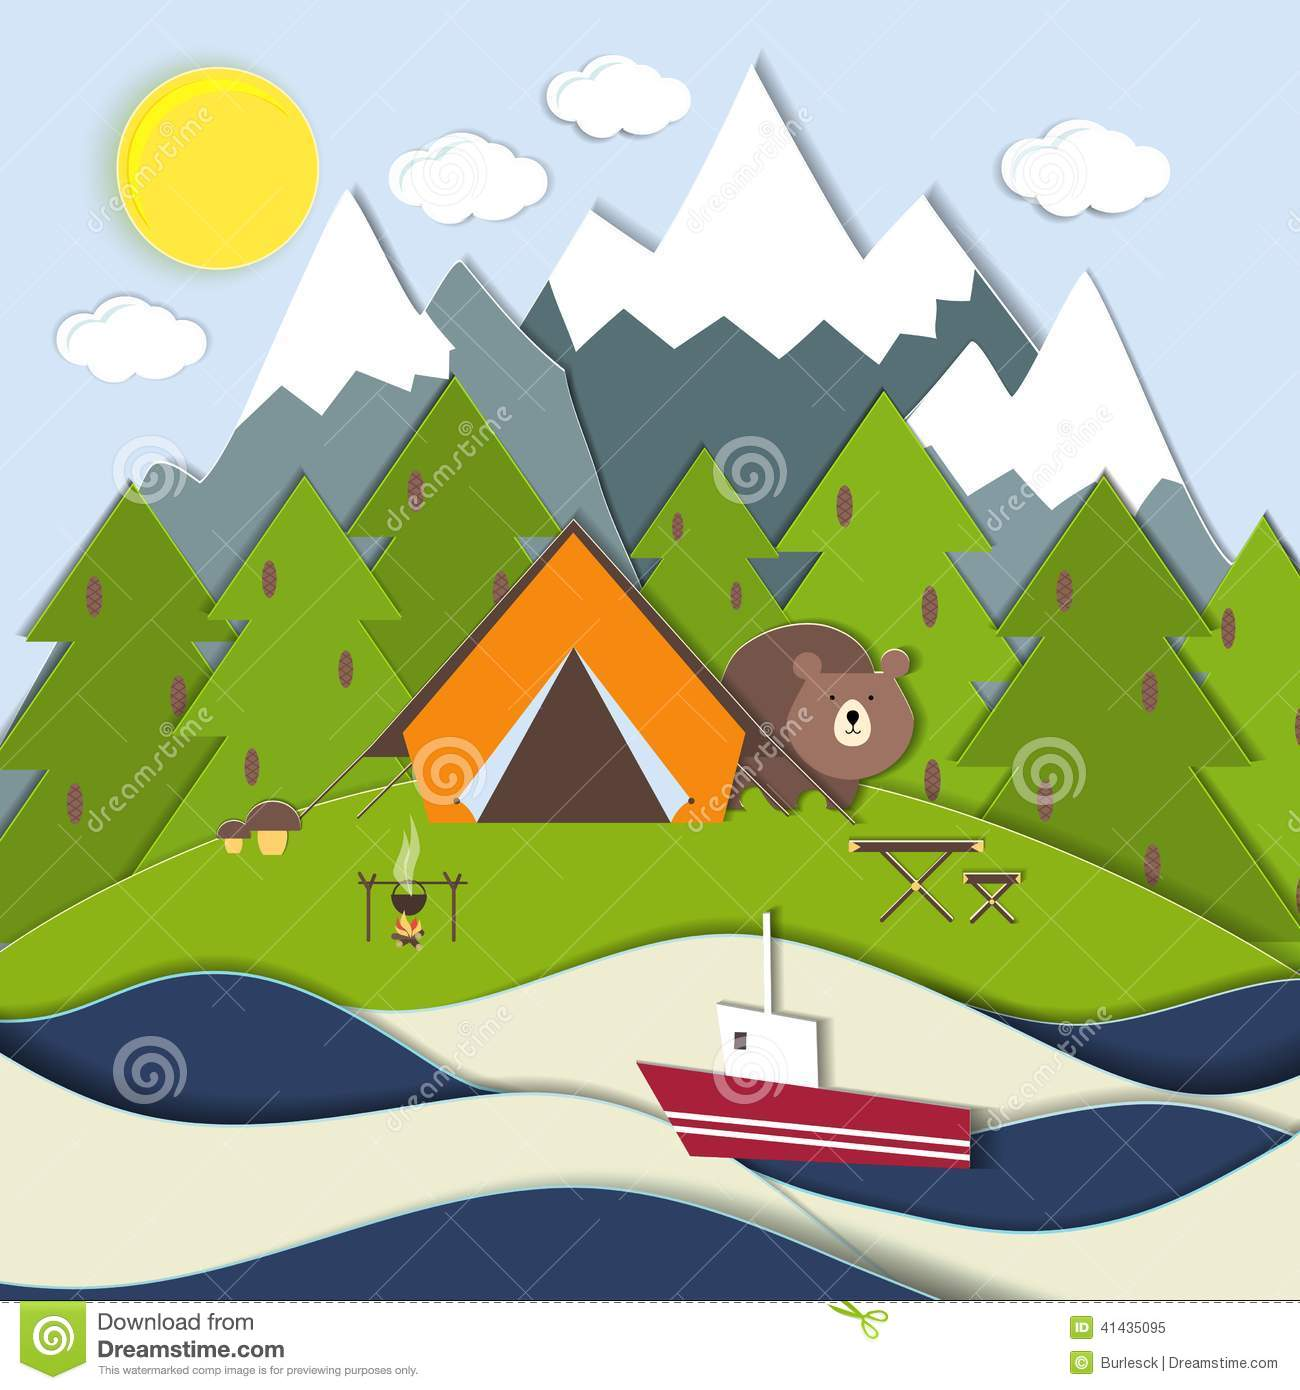 ... lake with a bear peeking around the tent at a fishing boat and snow